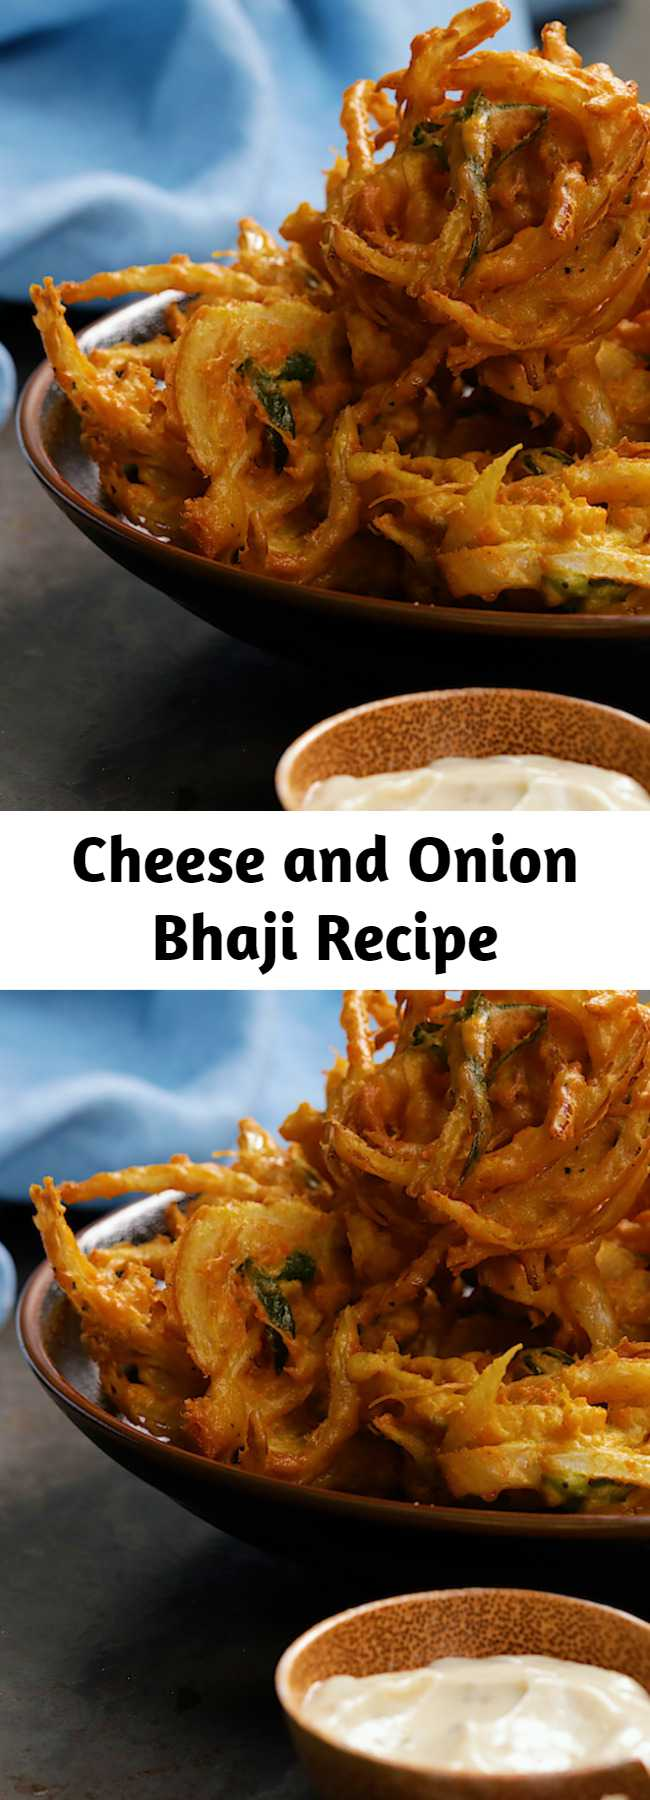 Cheese and Onion Bhaji Recipe - The only cheese and onion bhaji recipe you'll ever need!